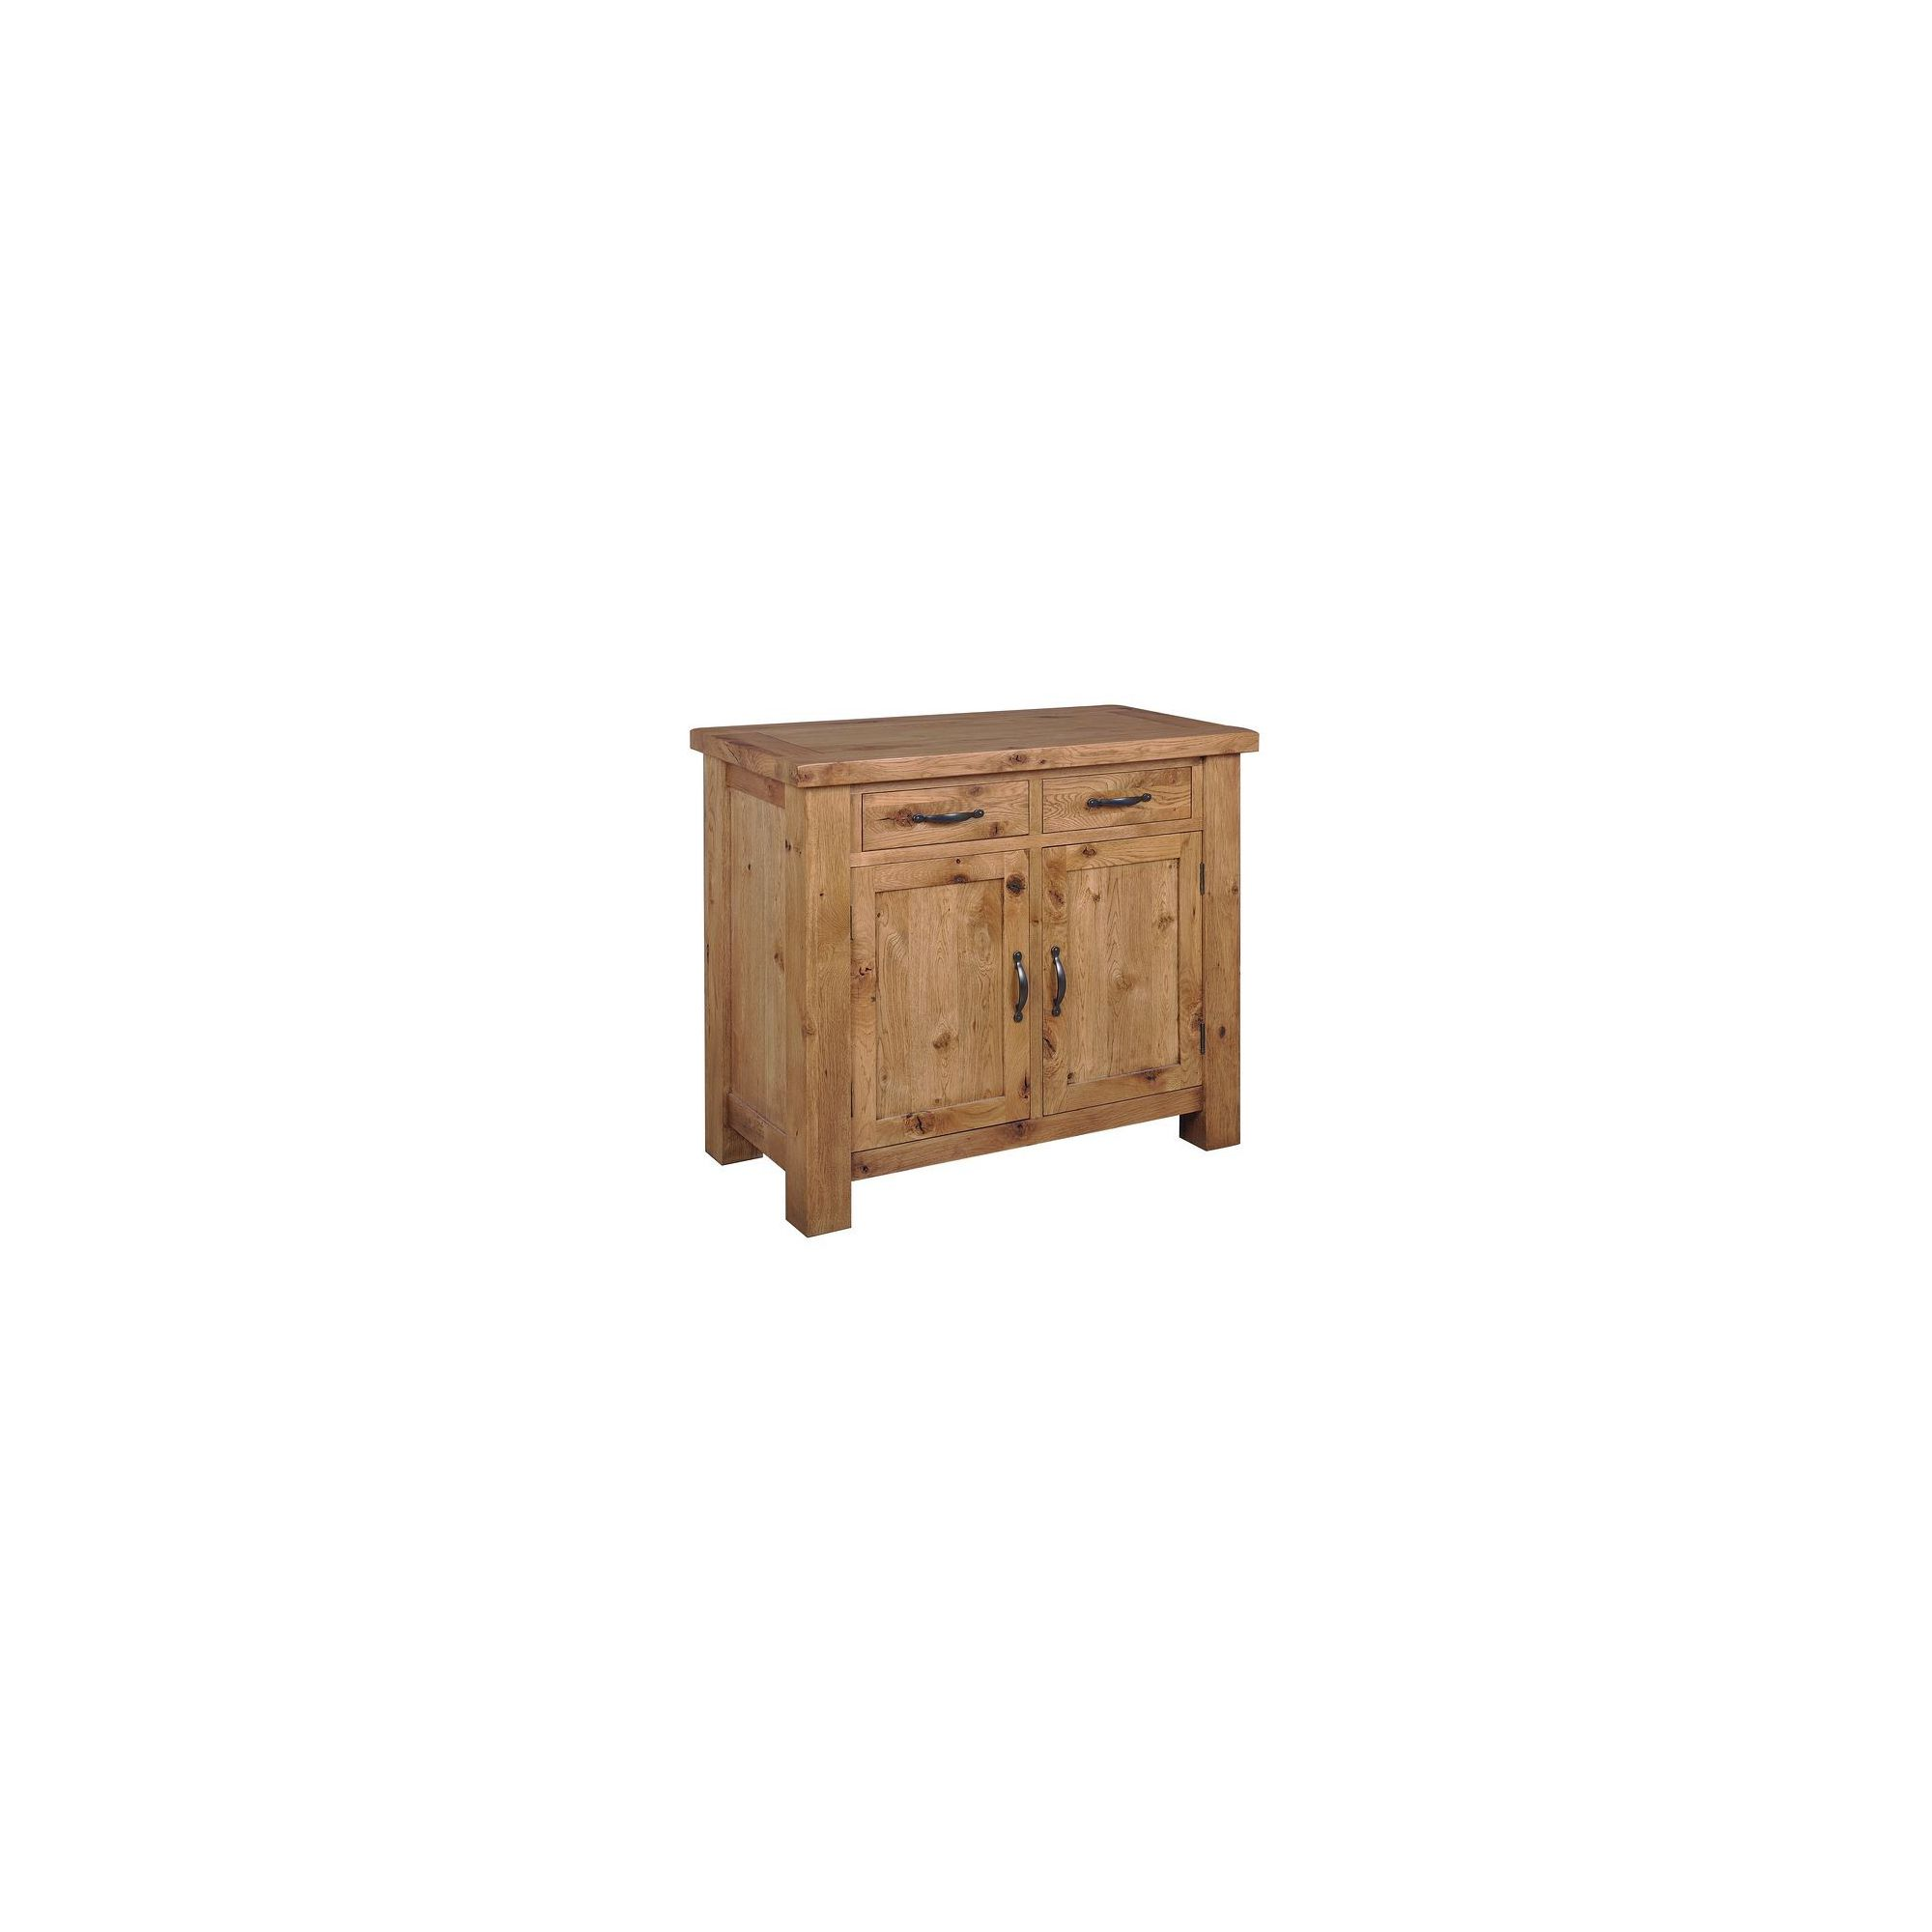 Origin Red Newland Oak Small Sideboard at Tesco Direct